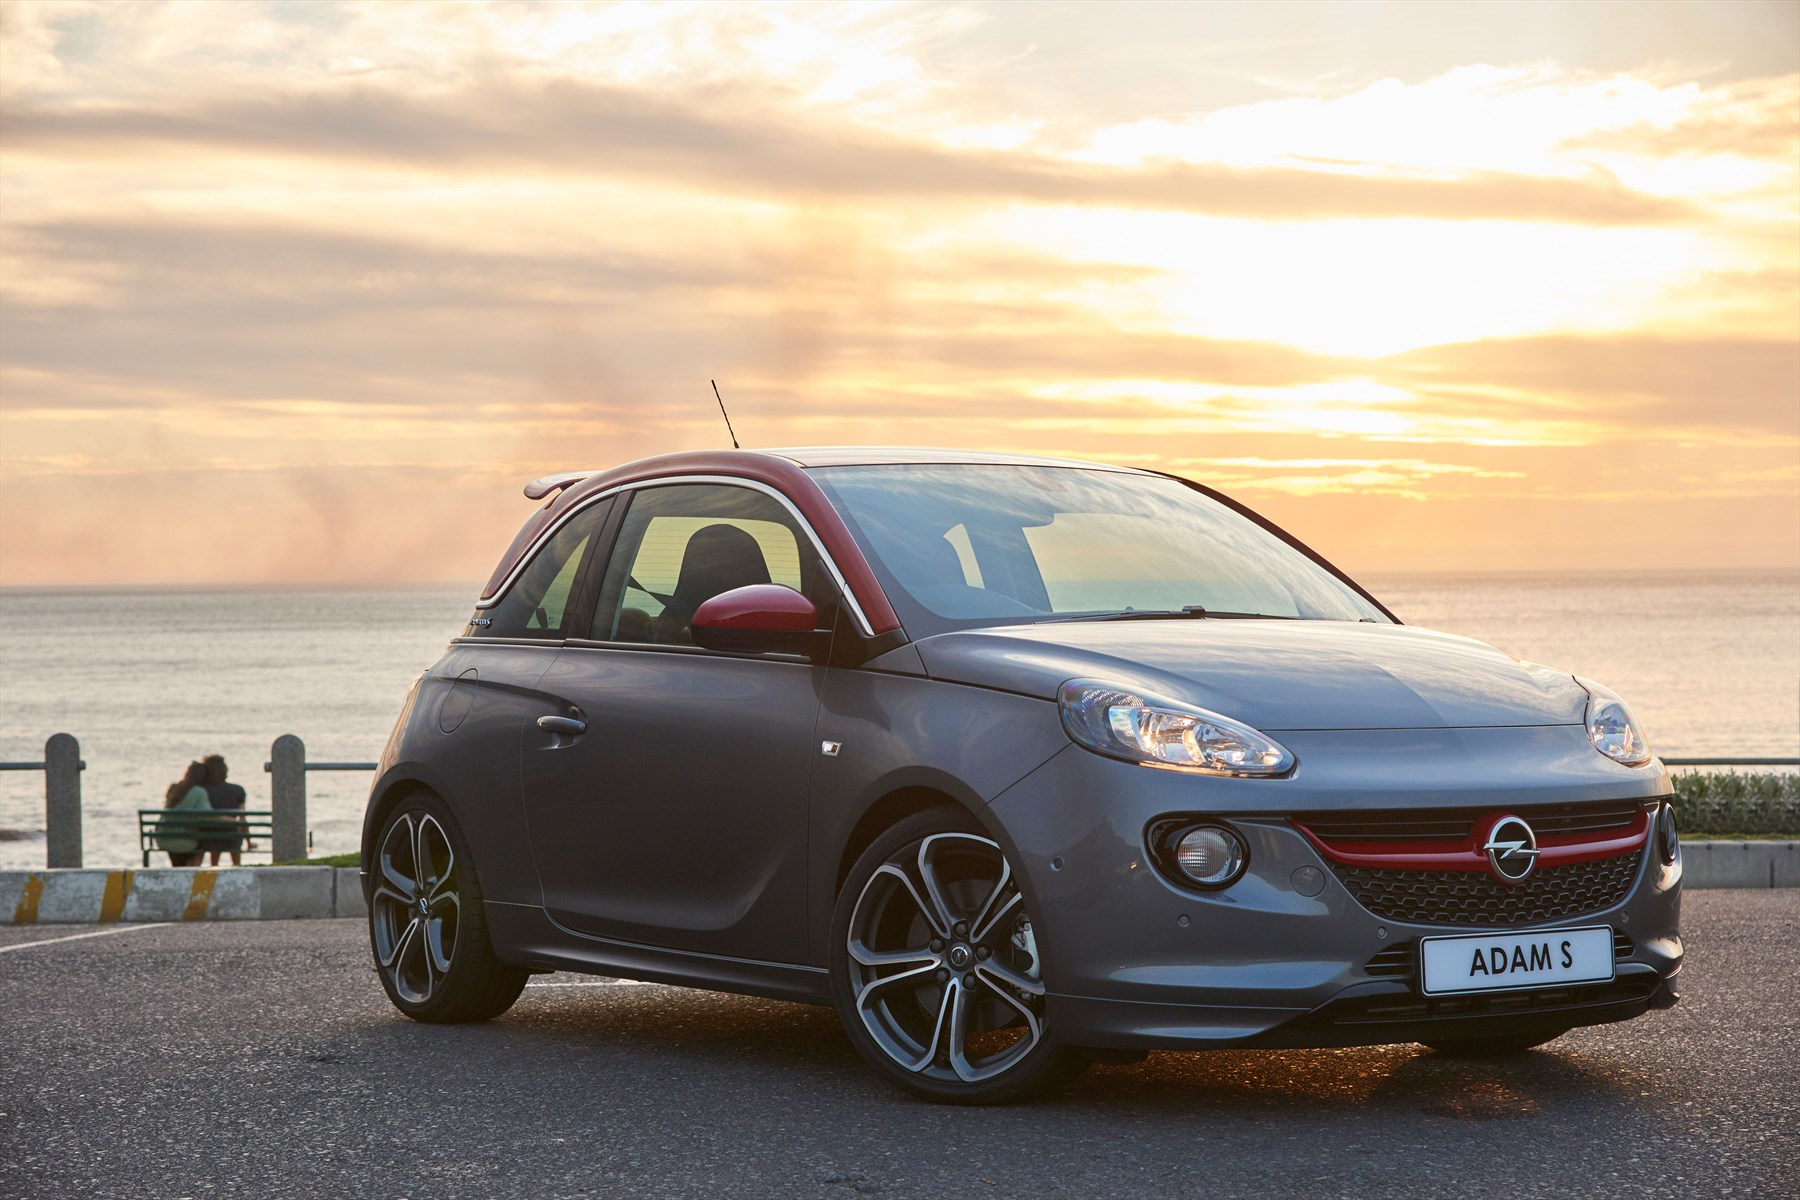 limited edition opel adam s in south africa barloworld. Black Bedroom Furniture Sets. Home Design Ideas